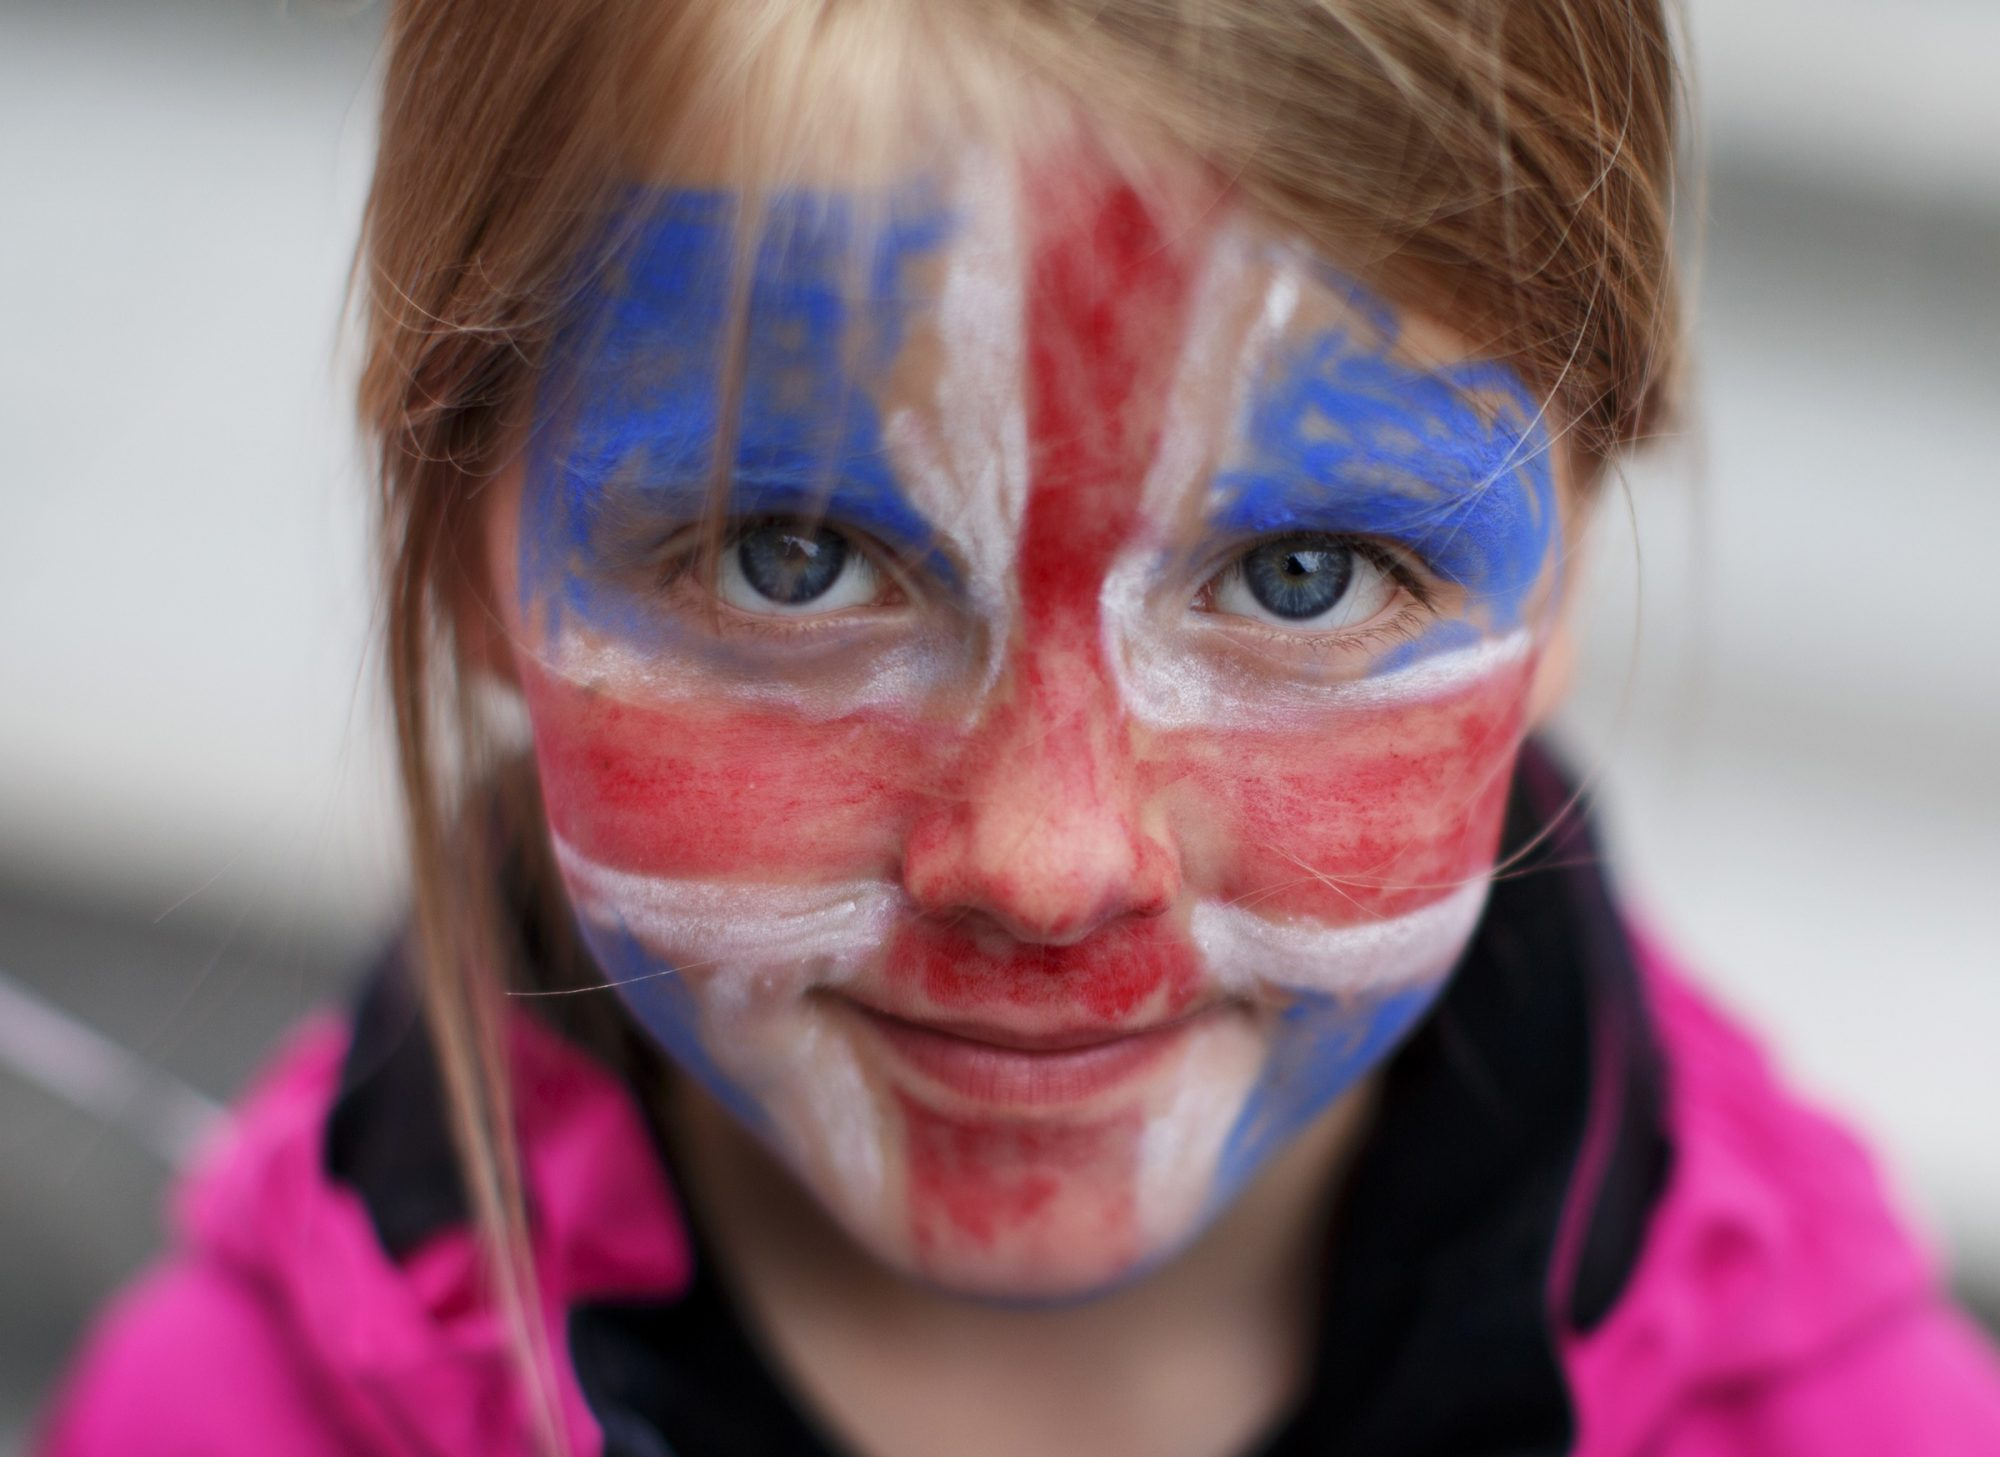 Iceland Young Girl LEAD